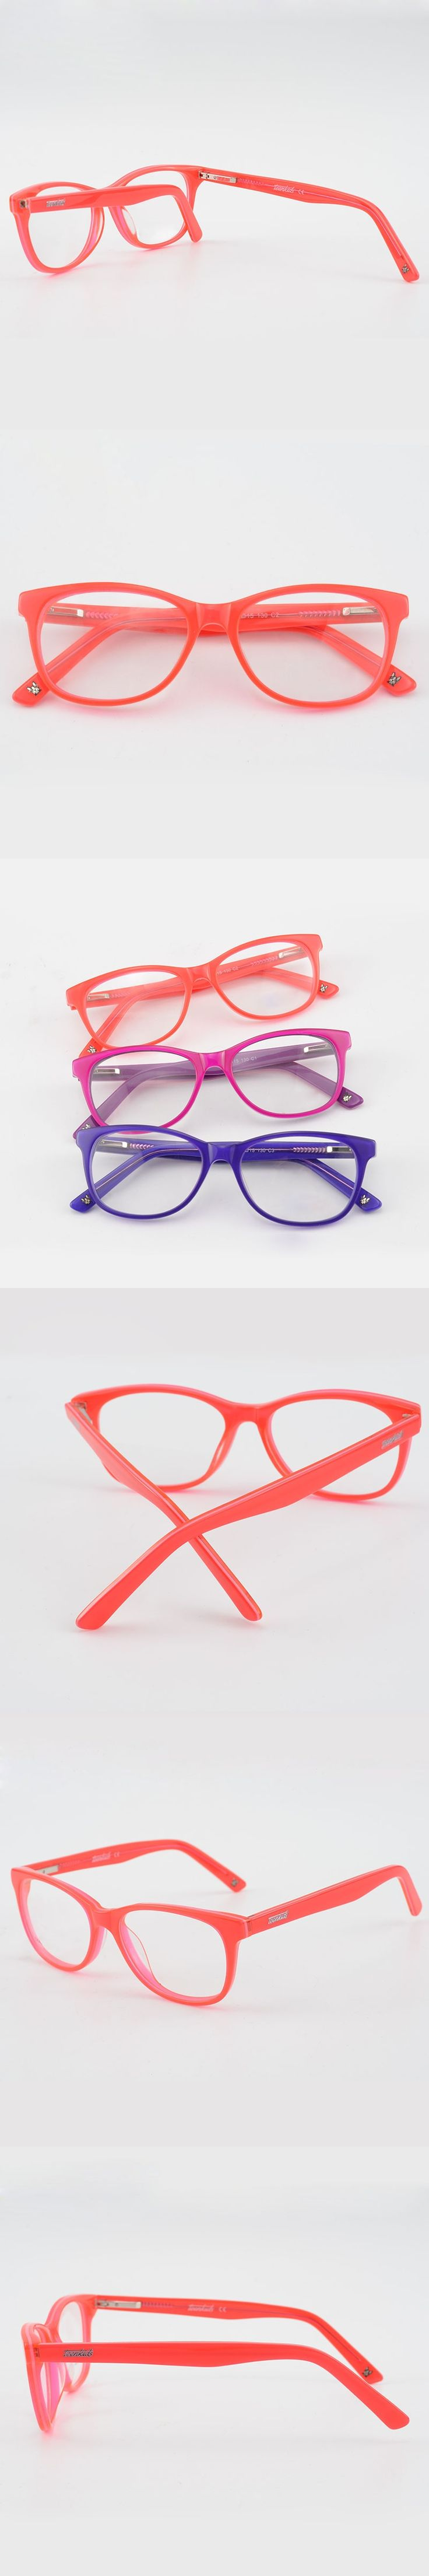 Cool Kids Glasses Frames Boy Girl Rectangular Kid's Eyeglasses Nerd Acetate Flexible Children Plastic Clear Lens